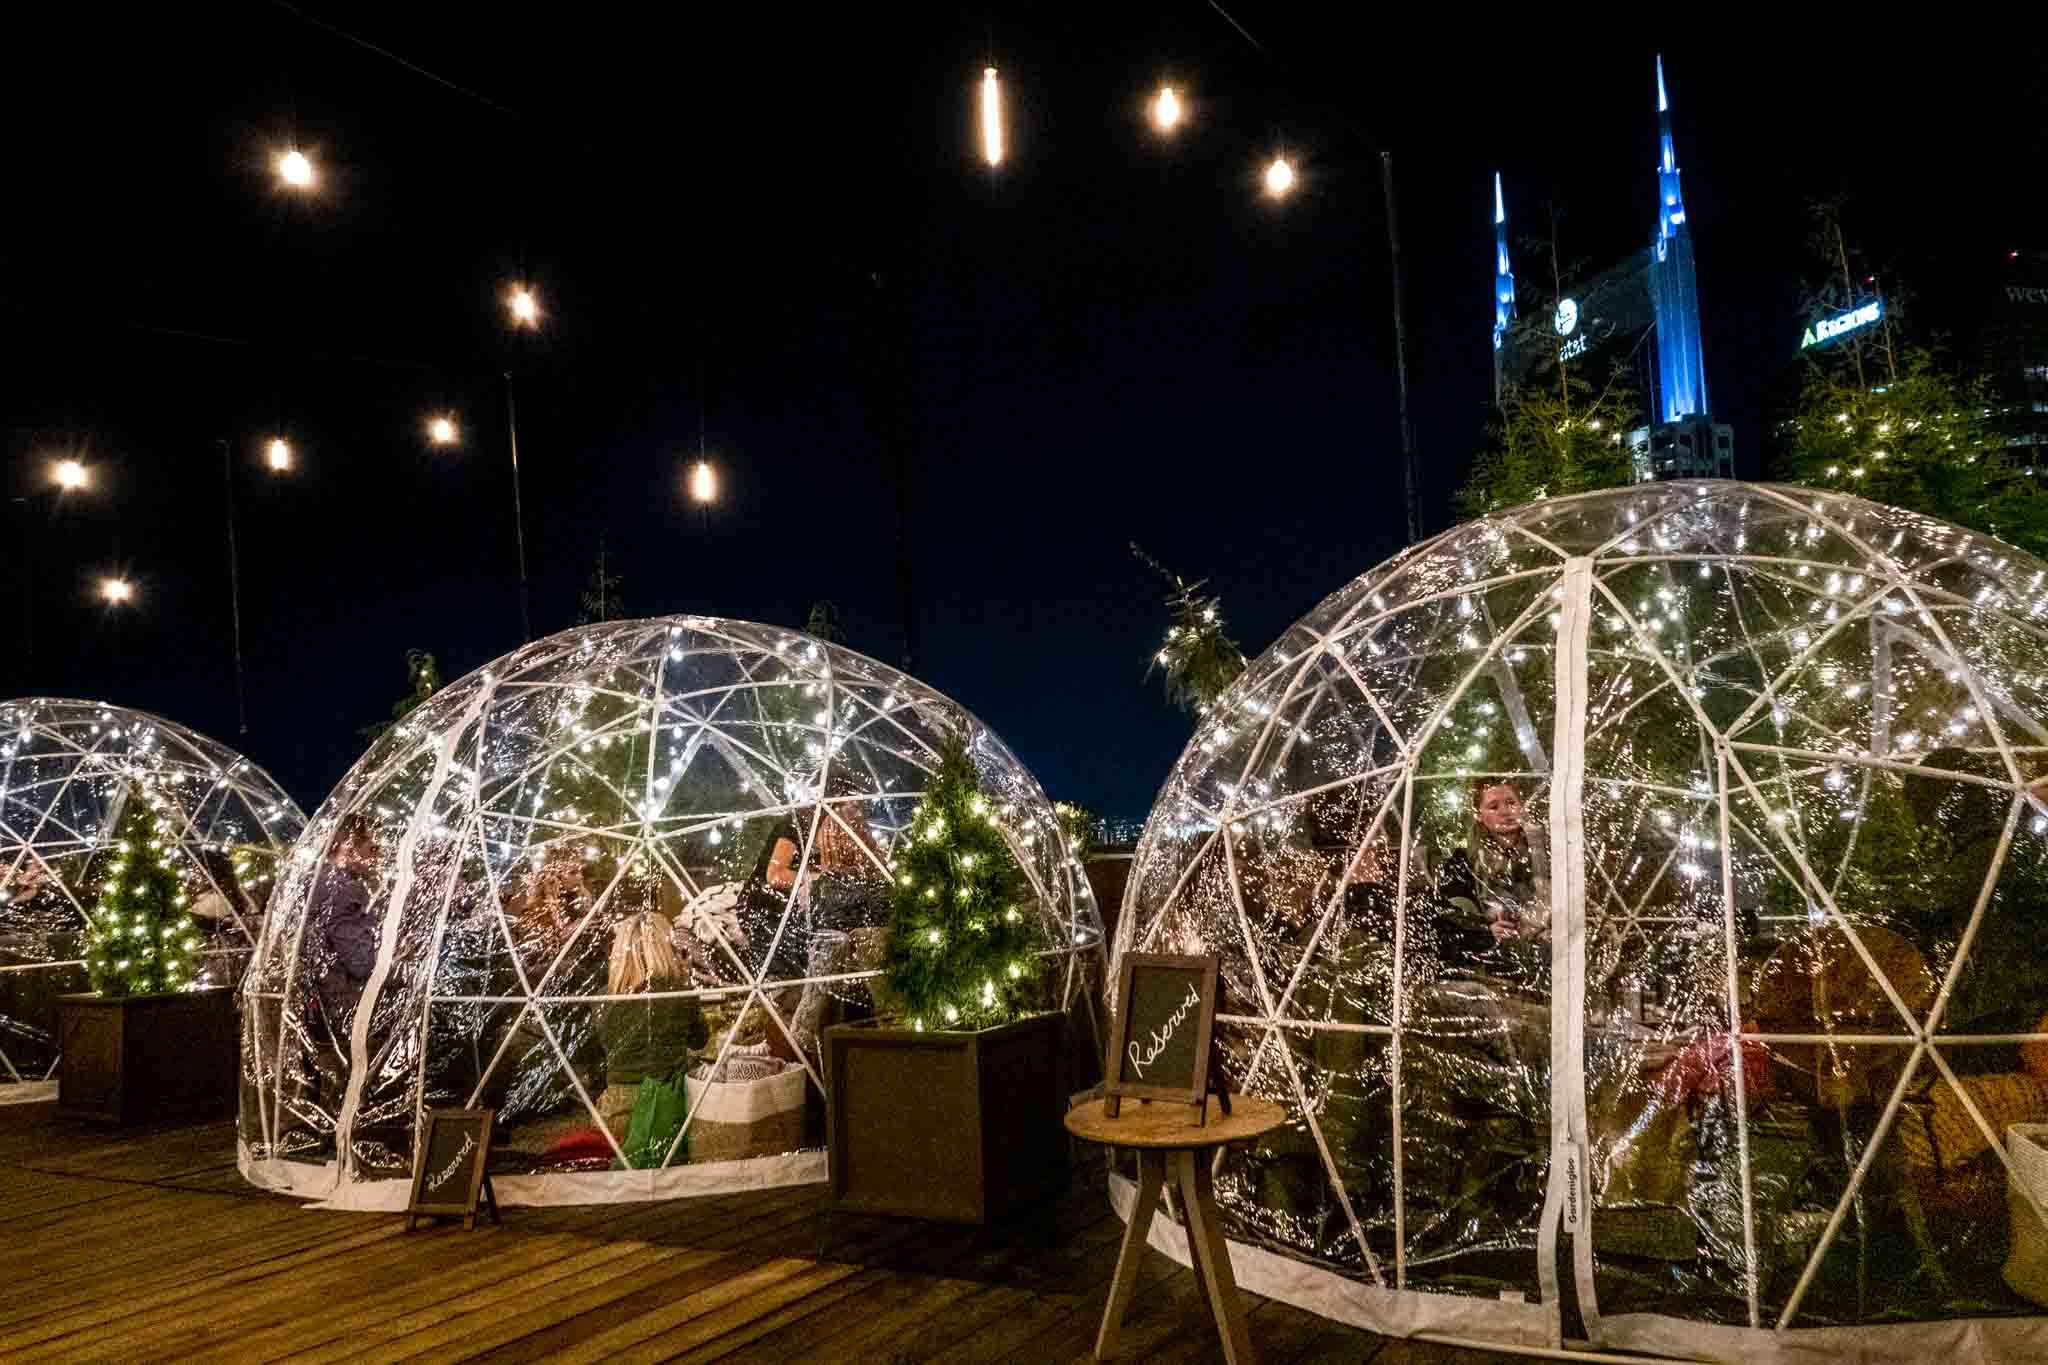 Igloo tents at night on the rooftop at Bobby Hotel